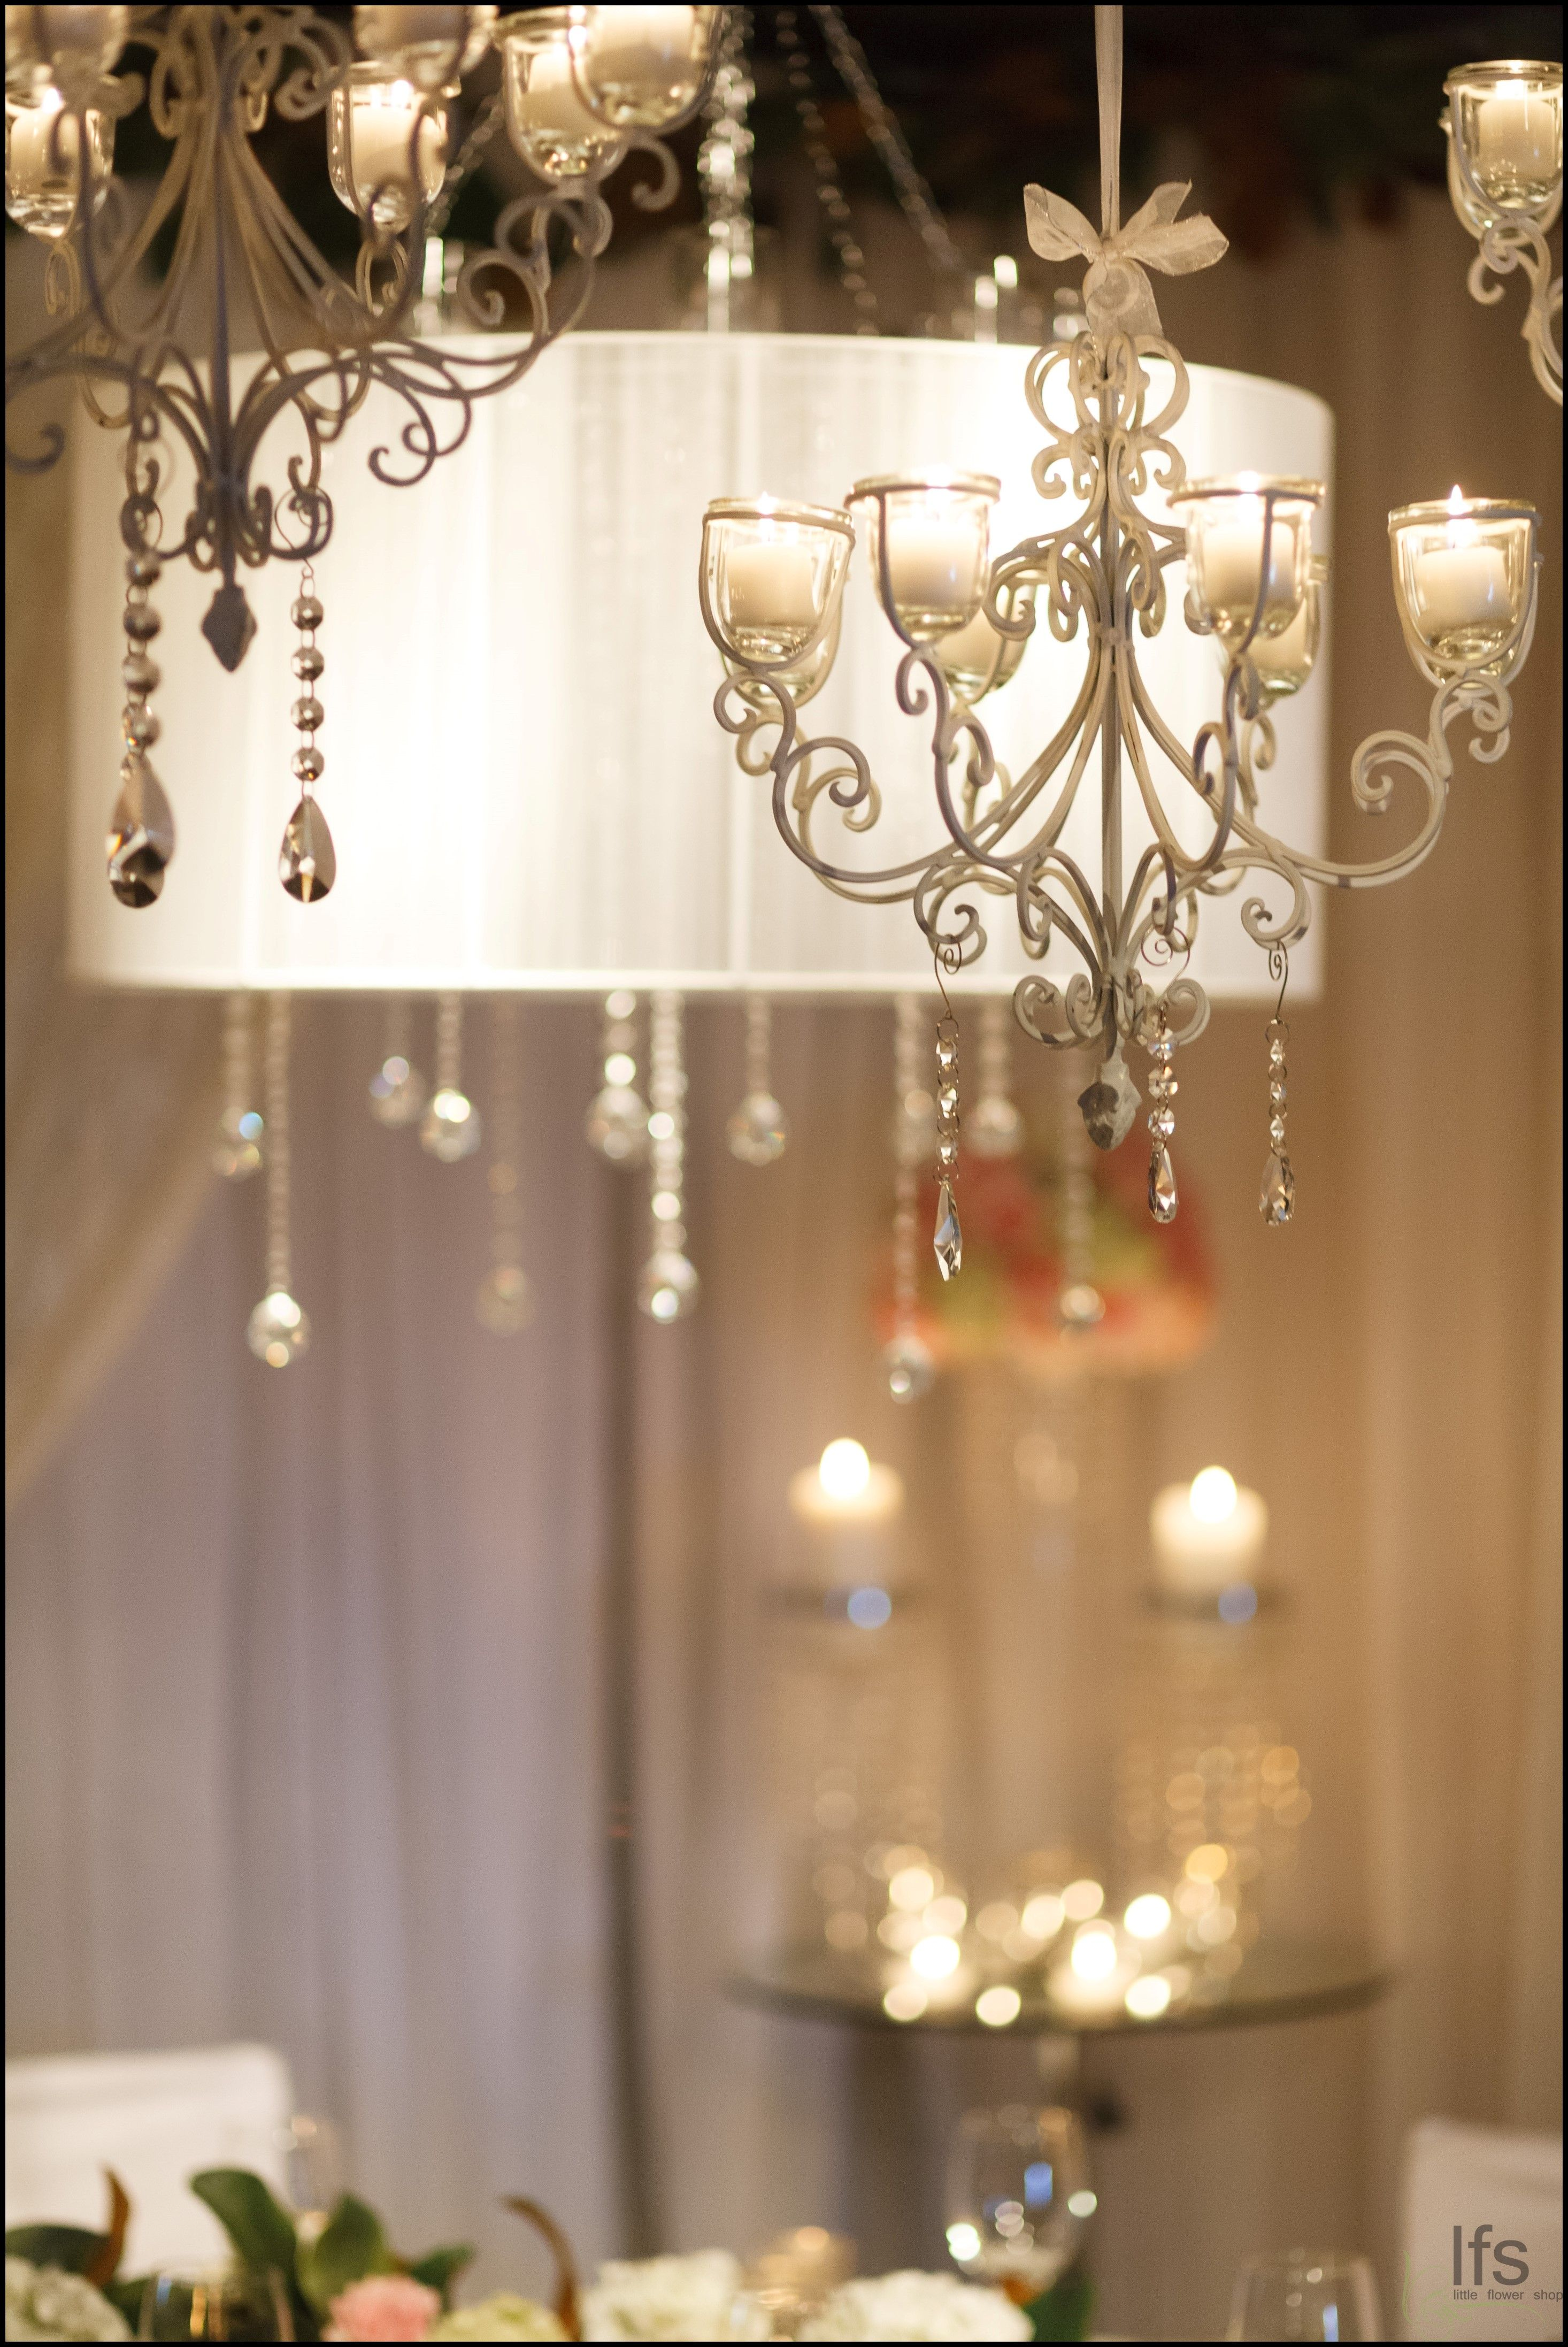 Chandeliers add a touch of detail and sparkle to weddings